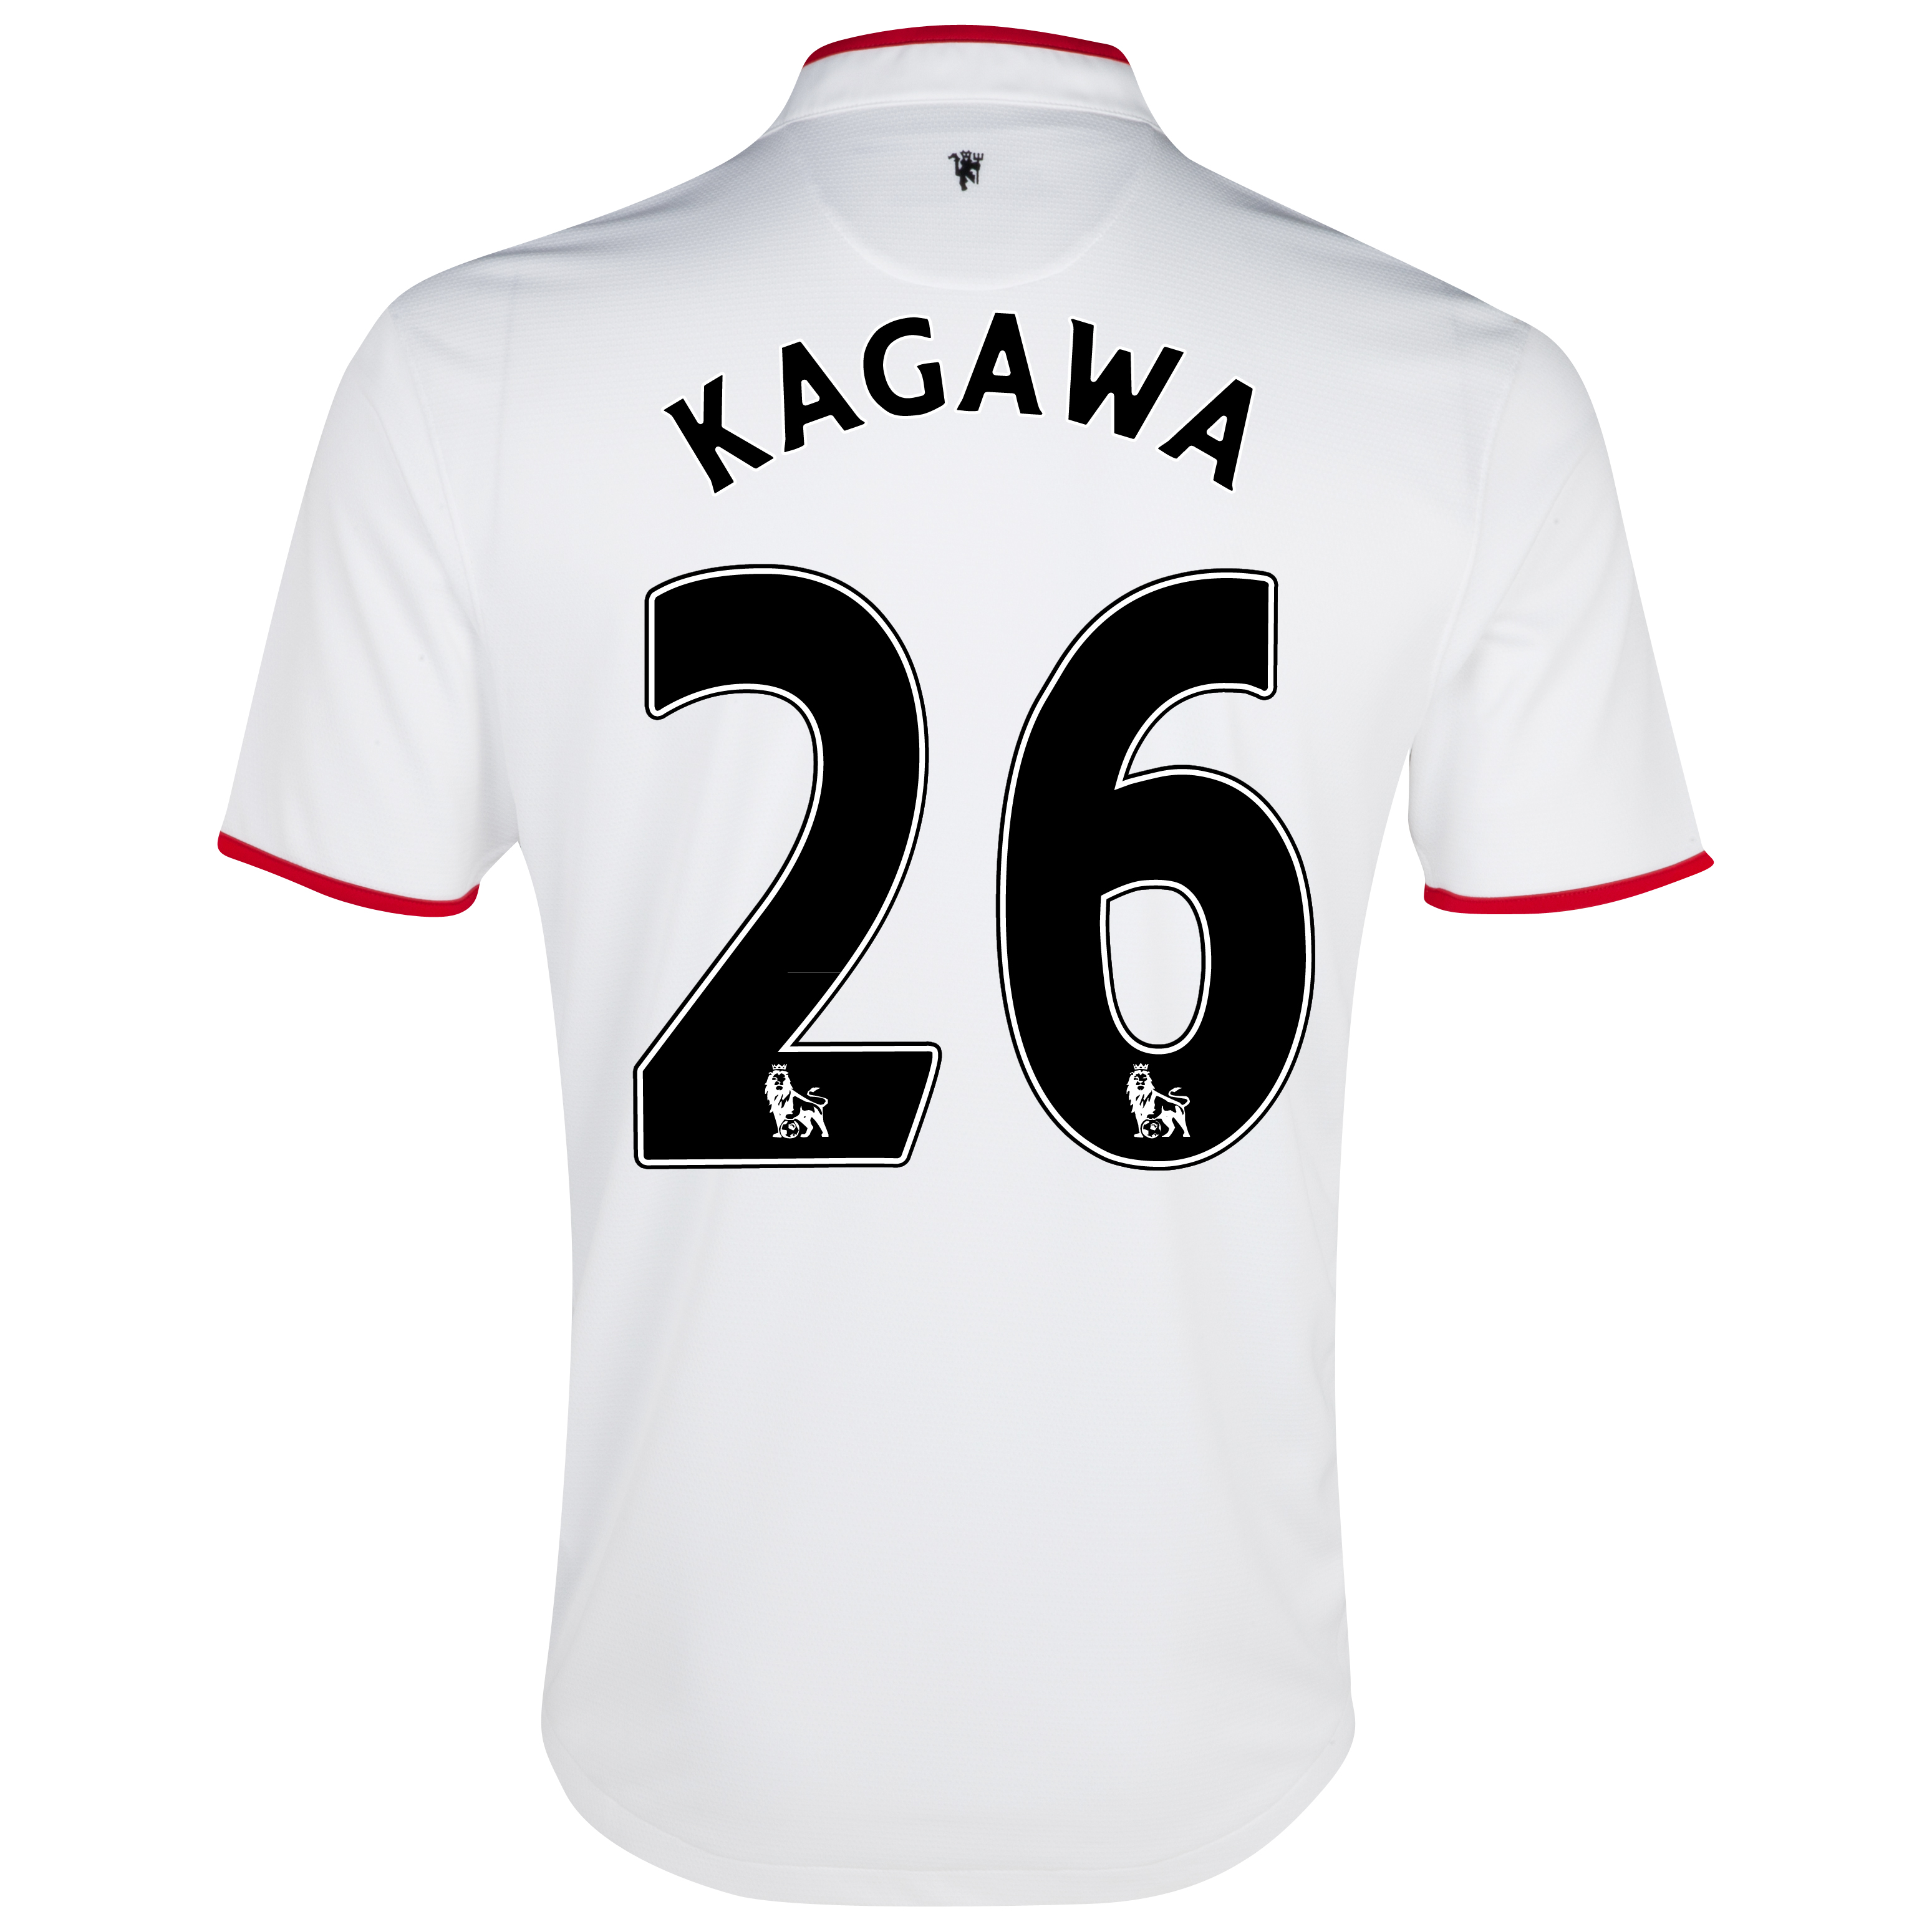 Manchester United Away Shirt 2012/13 with Kagawa 26 printing